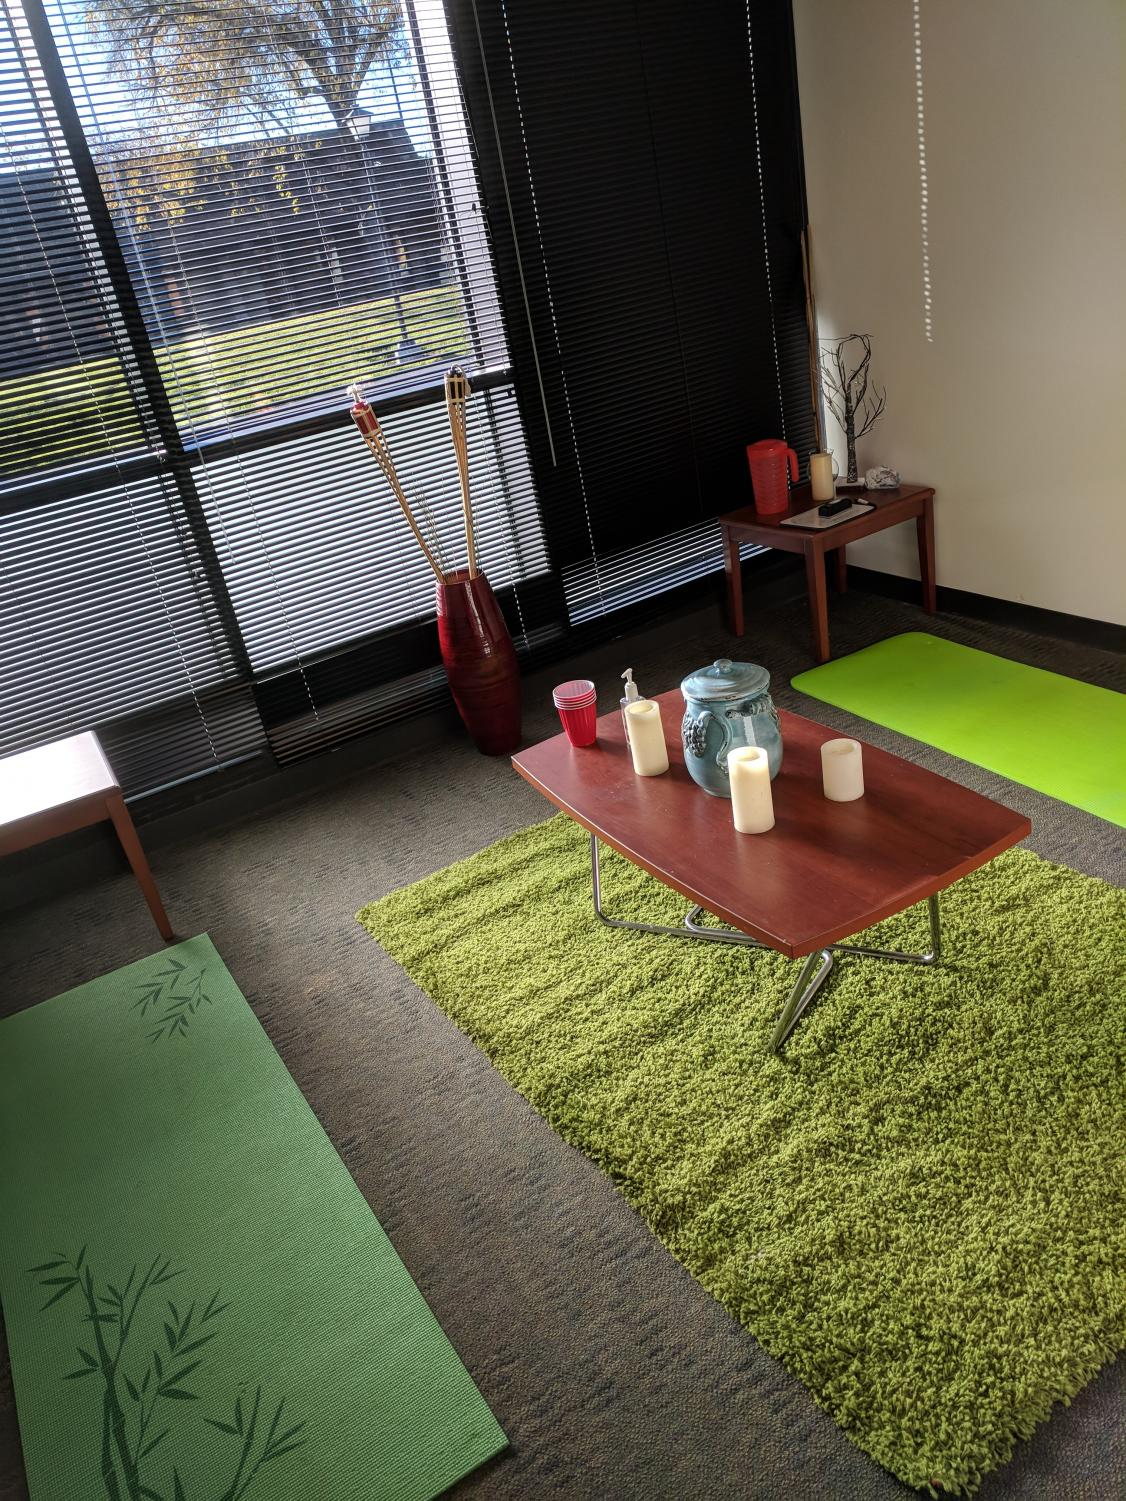 Foothill College's meditation room, located in the ASFC office